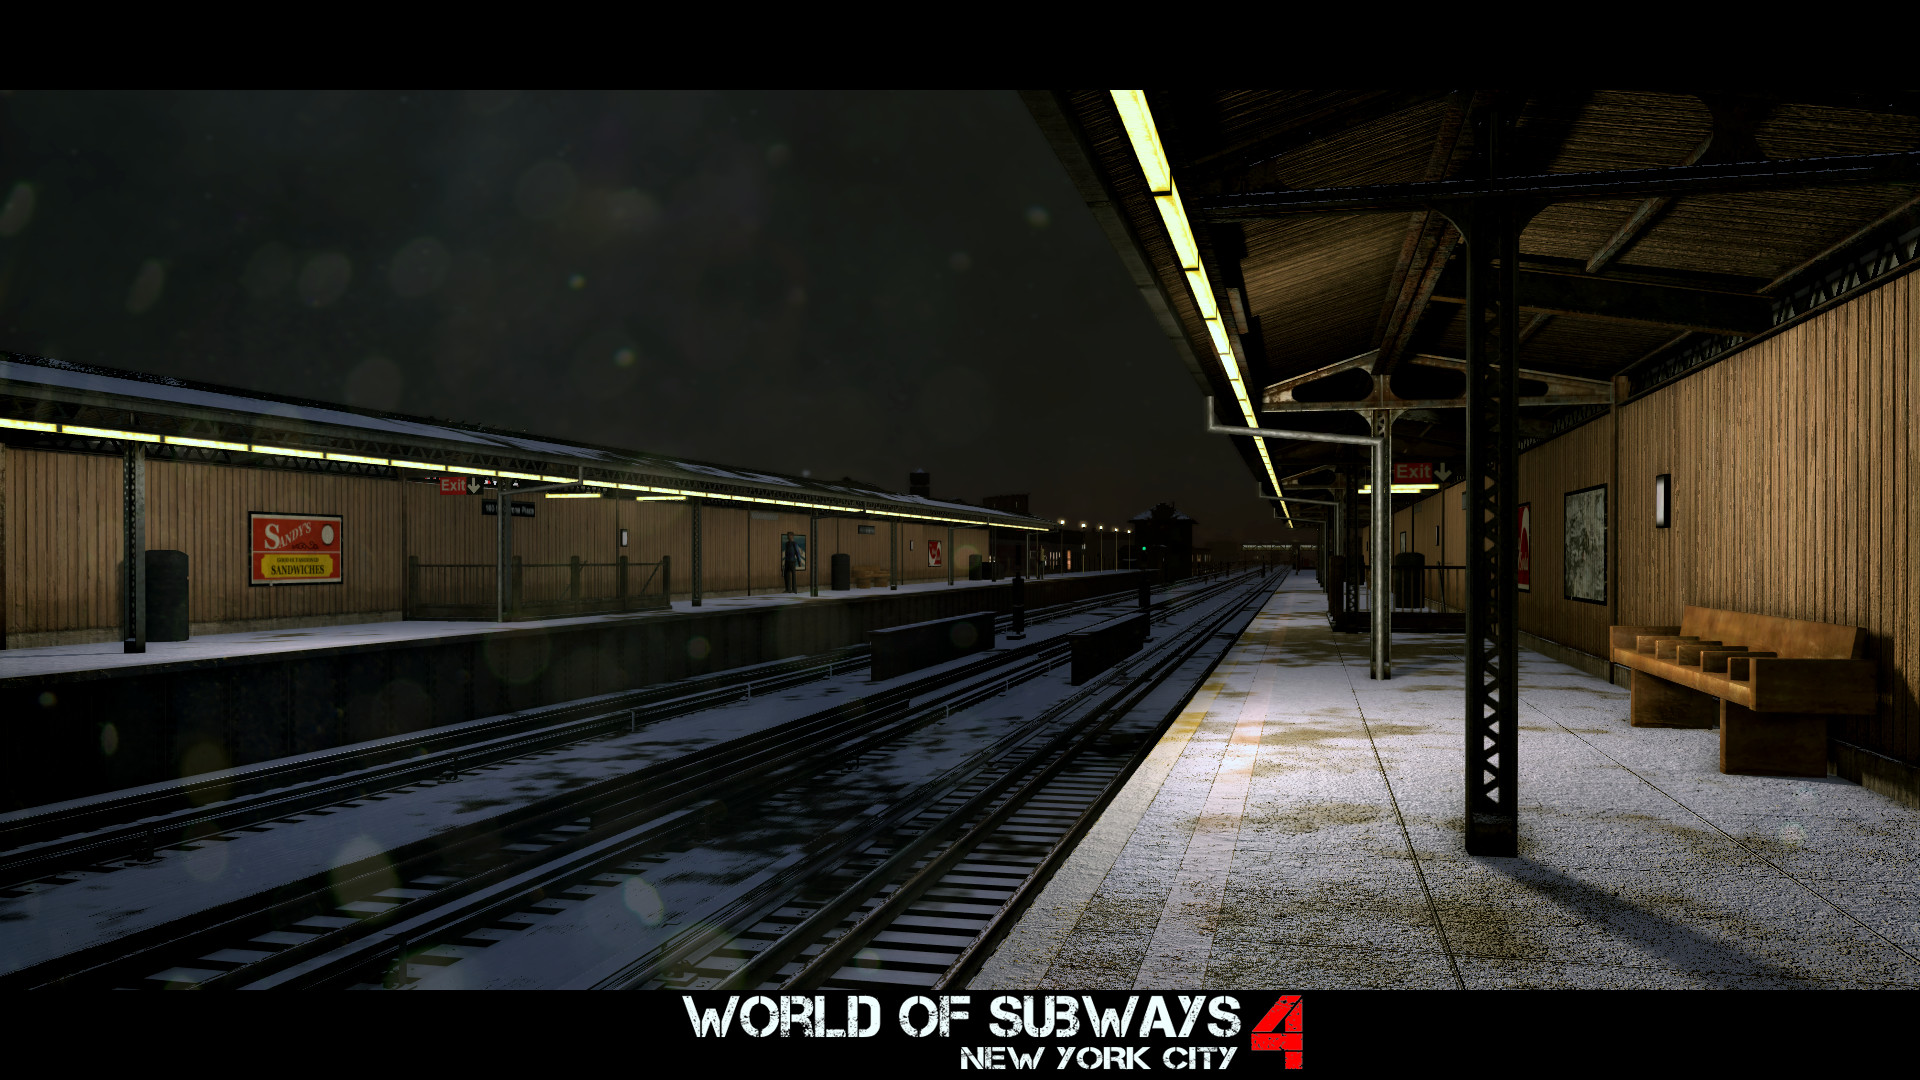 world of subways vol 4 free download